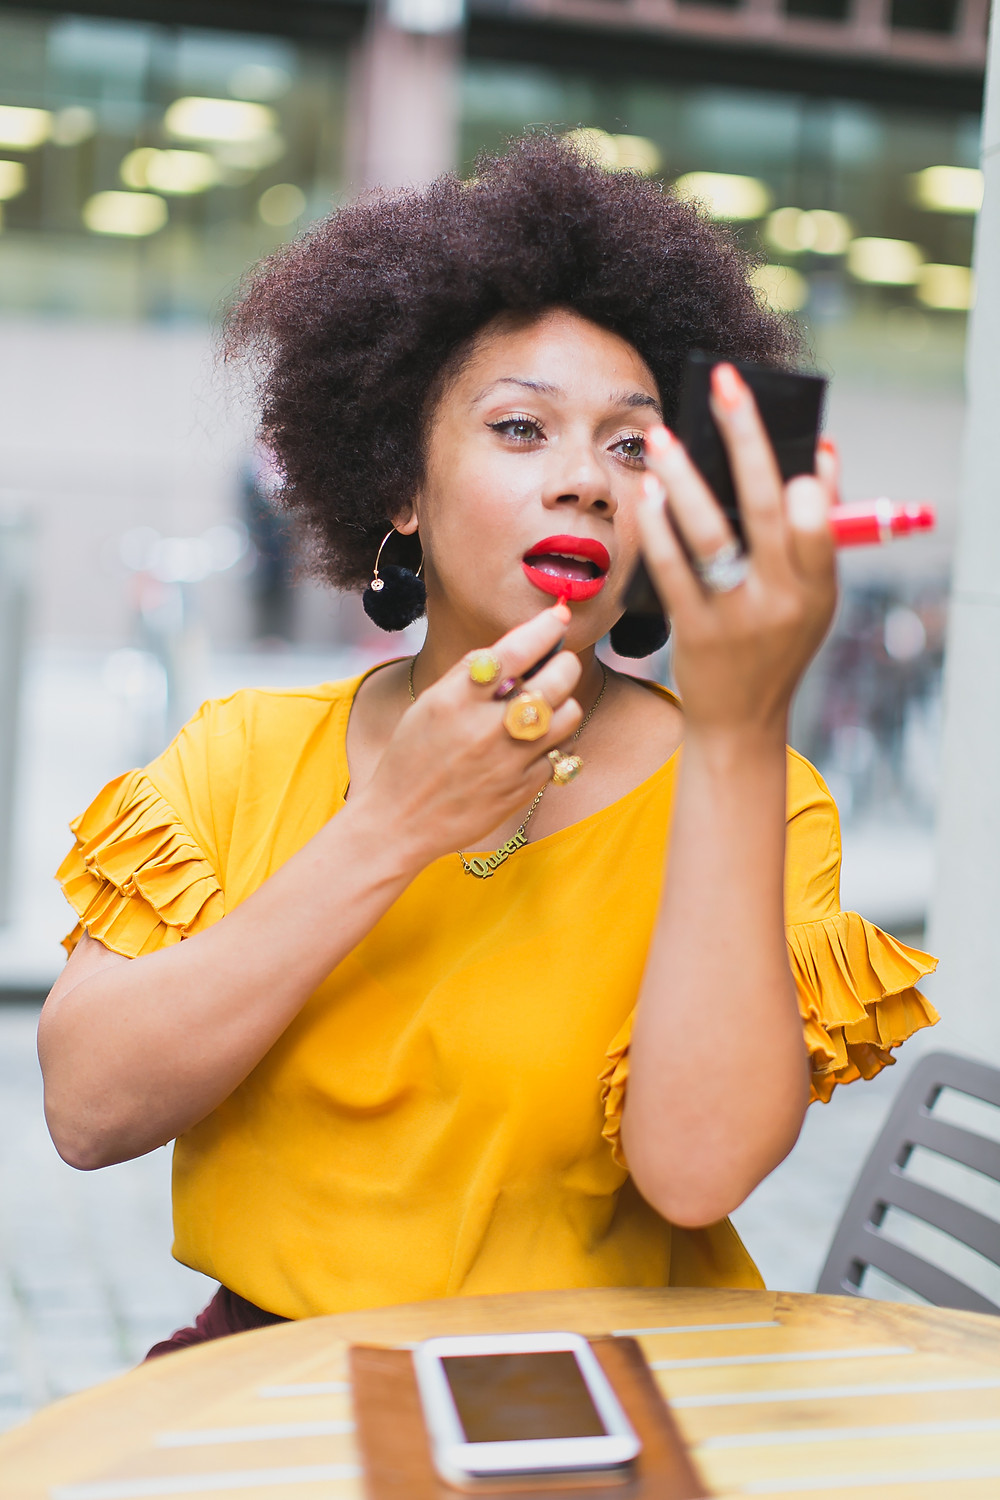 Nat from Style Me Sunday shown sitting at a table wearing a rust coloured top from Avon, pictured applying bright red lipstick. Her hair is work afro style and she has a necklace that spells out queen. She also has big gold rings on too. And Avon black pom pom earrings.